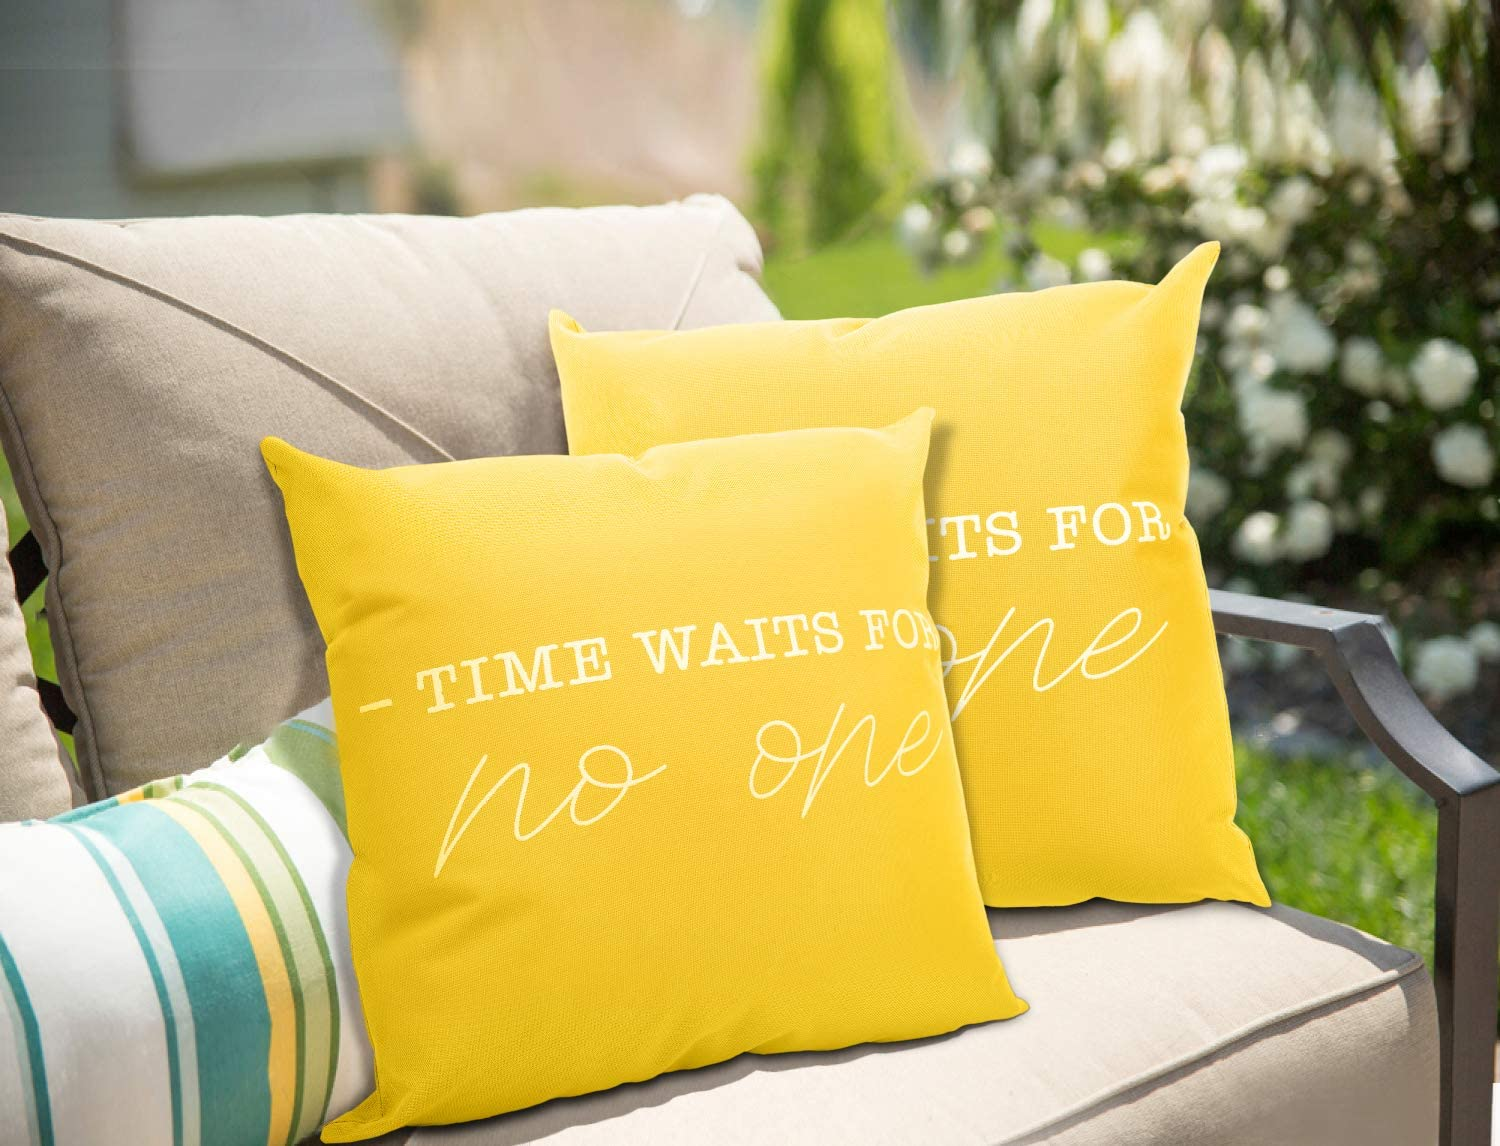 MoKo 2-Pack Waterproof Throw Pillow Cover, PU Coating Outdoor Pillow Cases Letter Prints Decorative Square Cushion Covers for Patio Couch Home Garden Decoration, 18